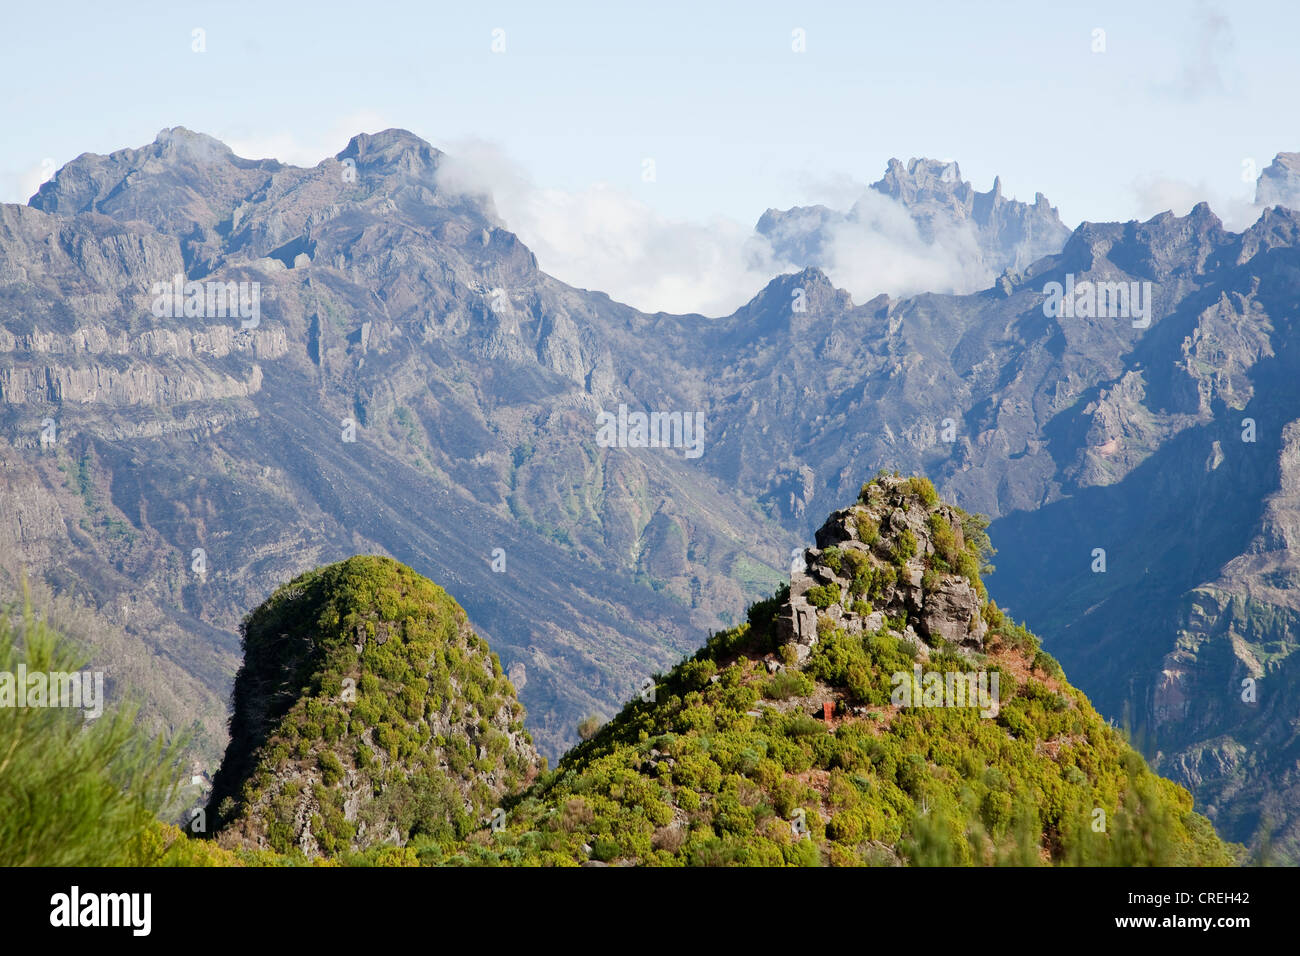 Central mountains of Madeira as seen from Encumeada mountain pass, Boca de Encumeada, Madeira, Portugal, Europe - Stock Image